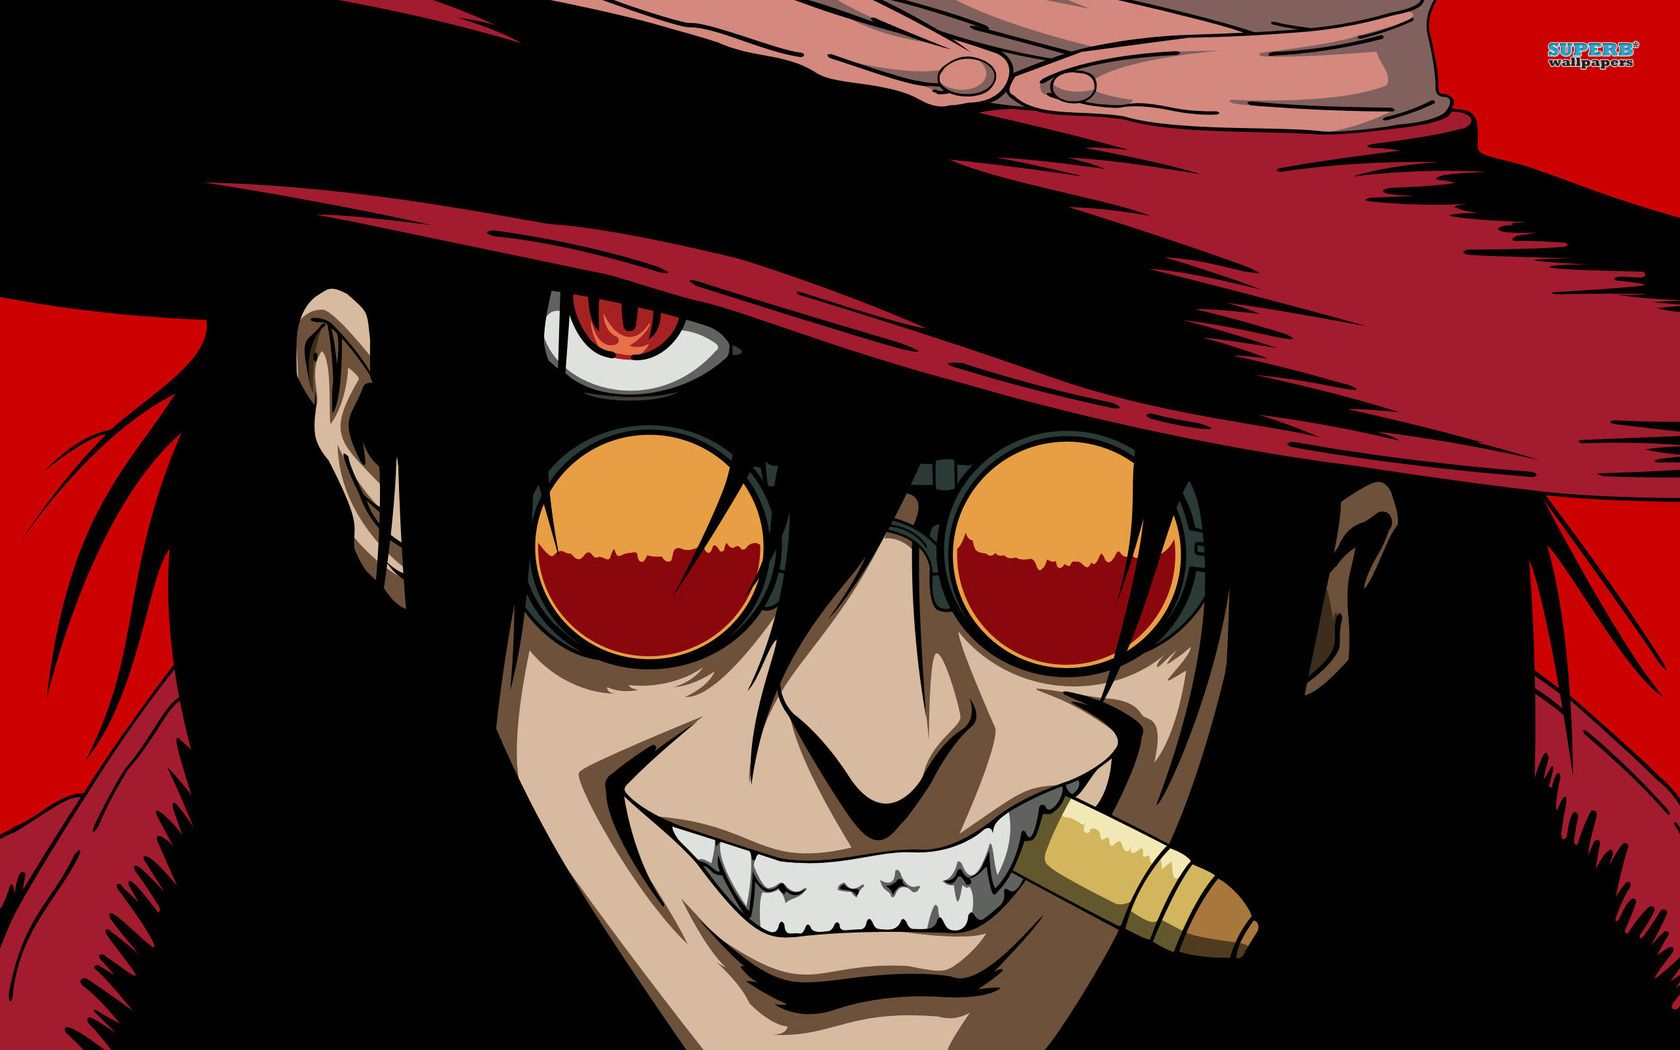 Download alucard hellsing anime wallpaper 1680x1050 full - Anime hellsing wallpaper ...